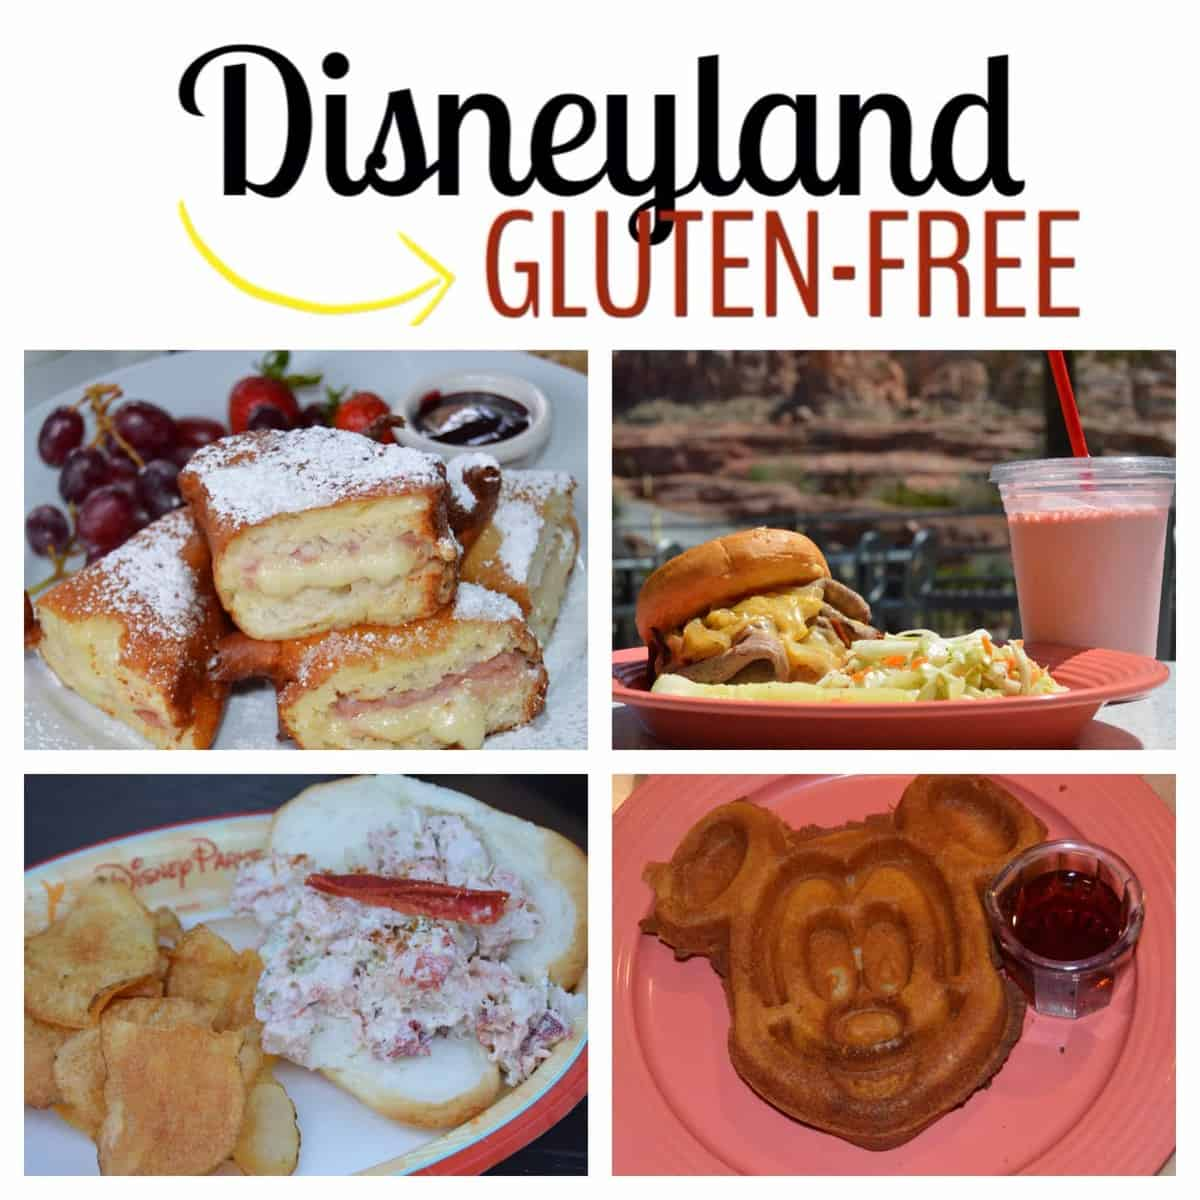 Disneyland Gluten-Free & California Adventure Gluten-Free (TONS of photos)